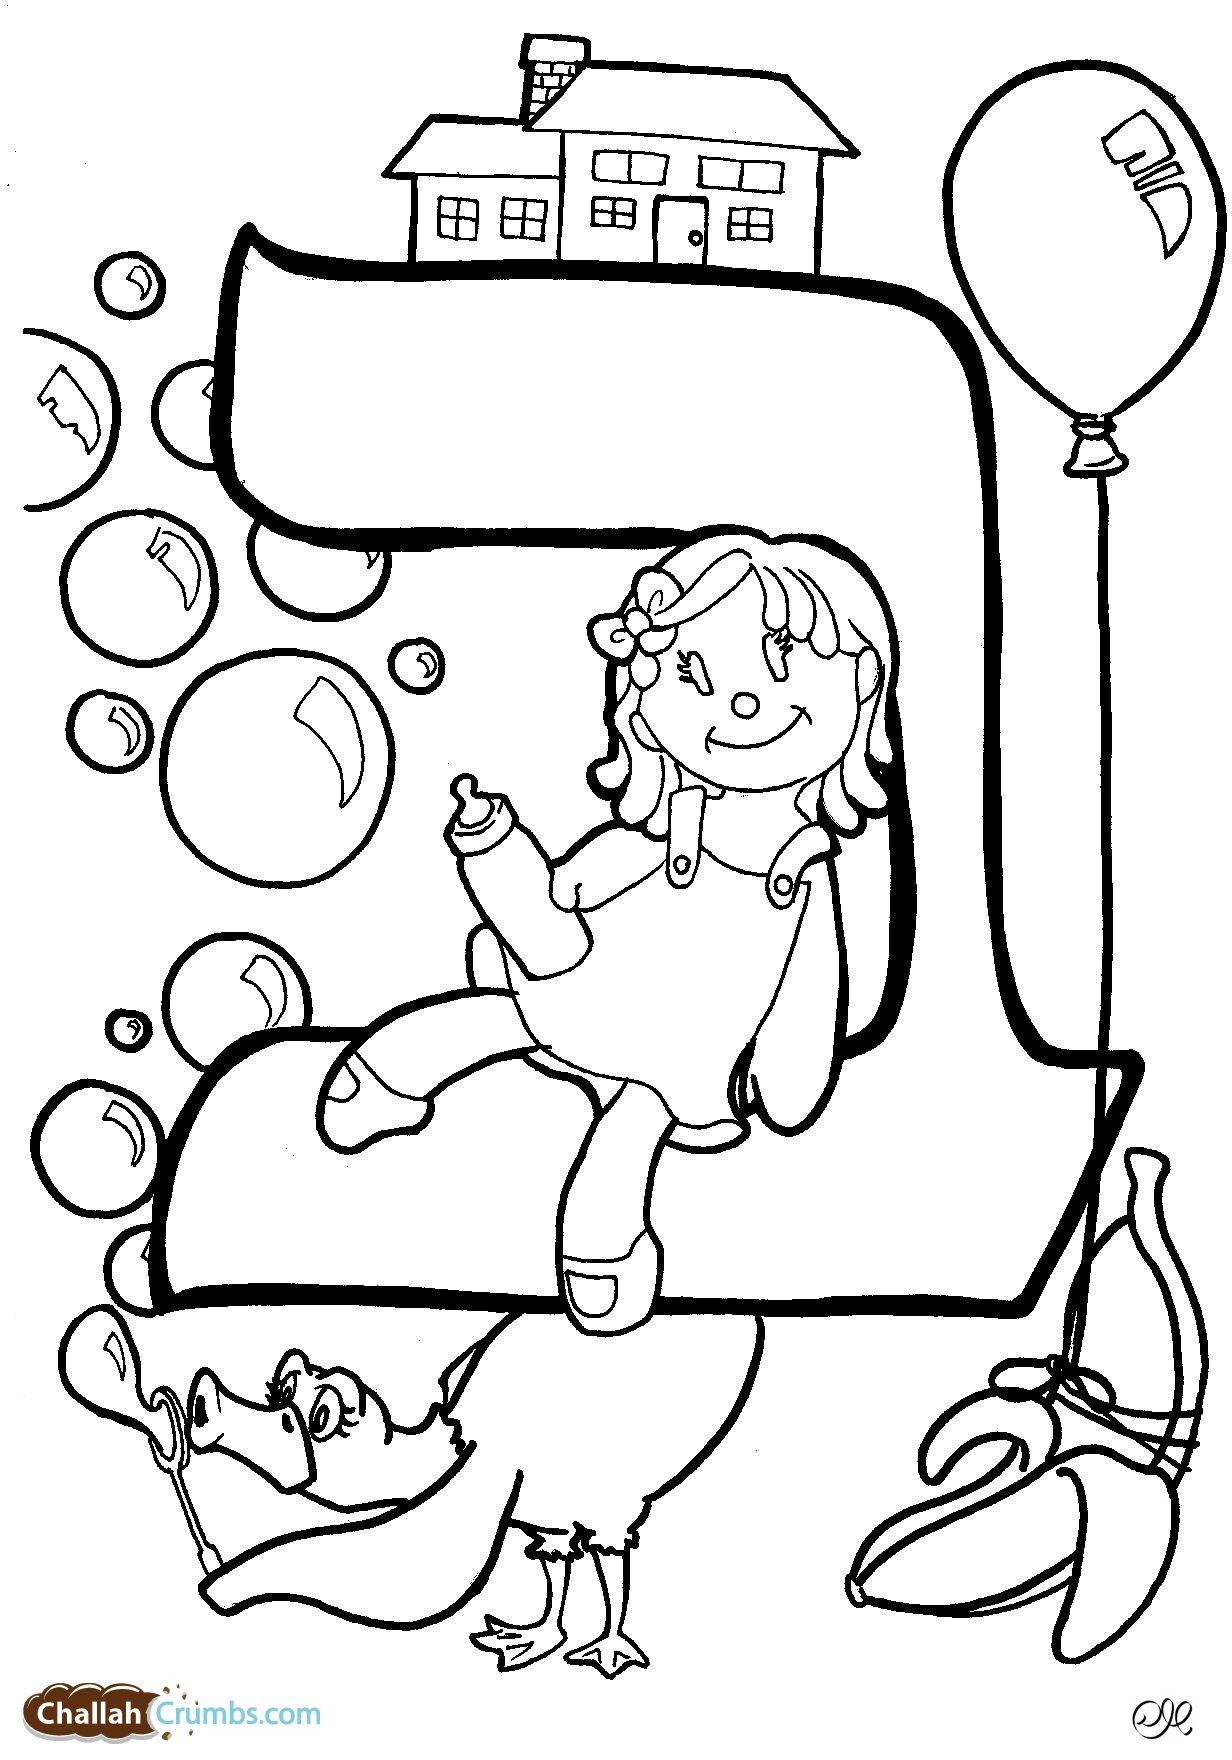 Simchat torah Coloring Pages  Gallery 14c - Free For kids